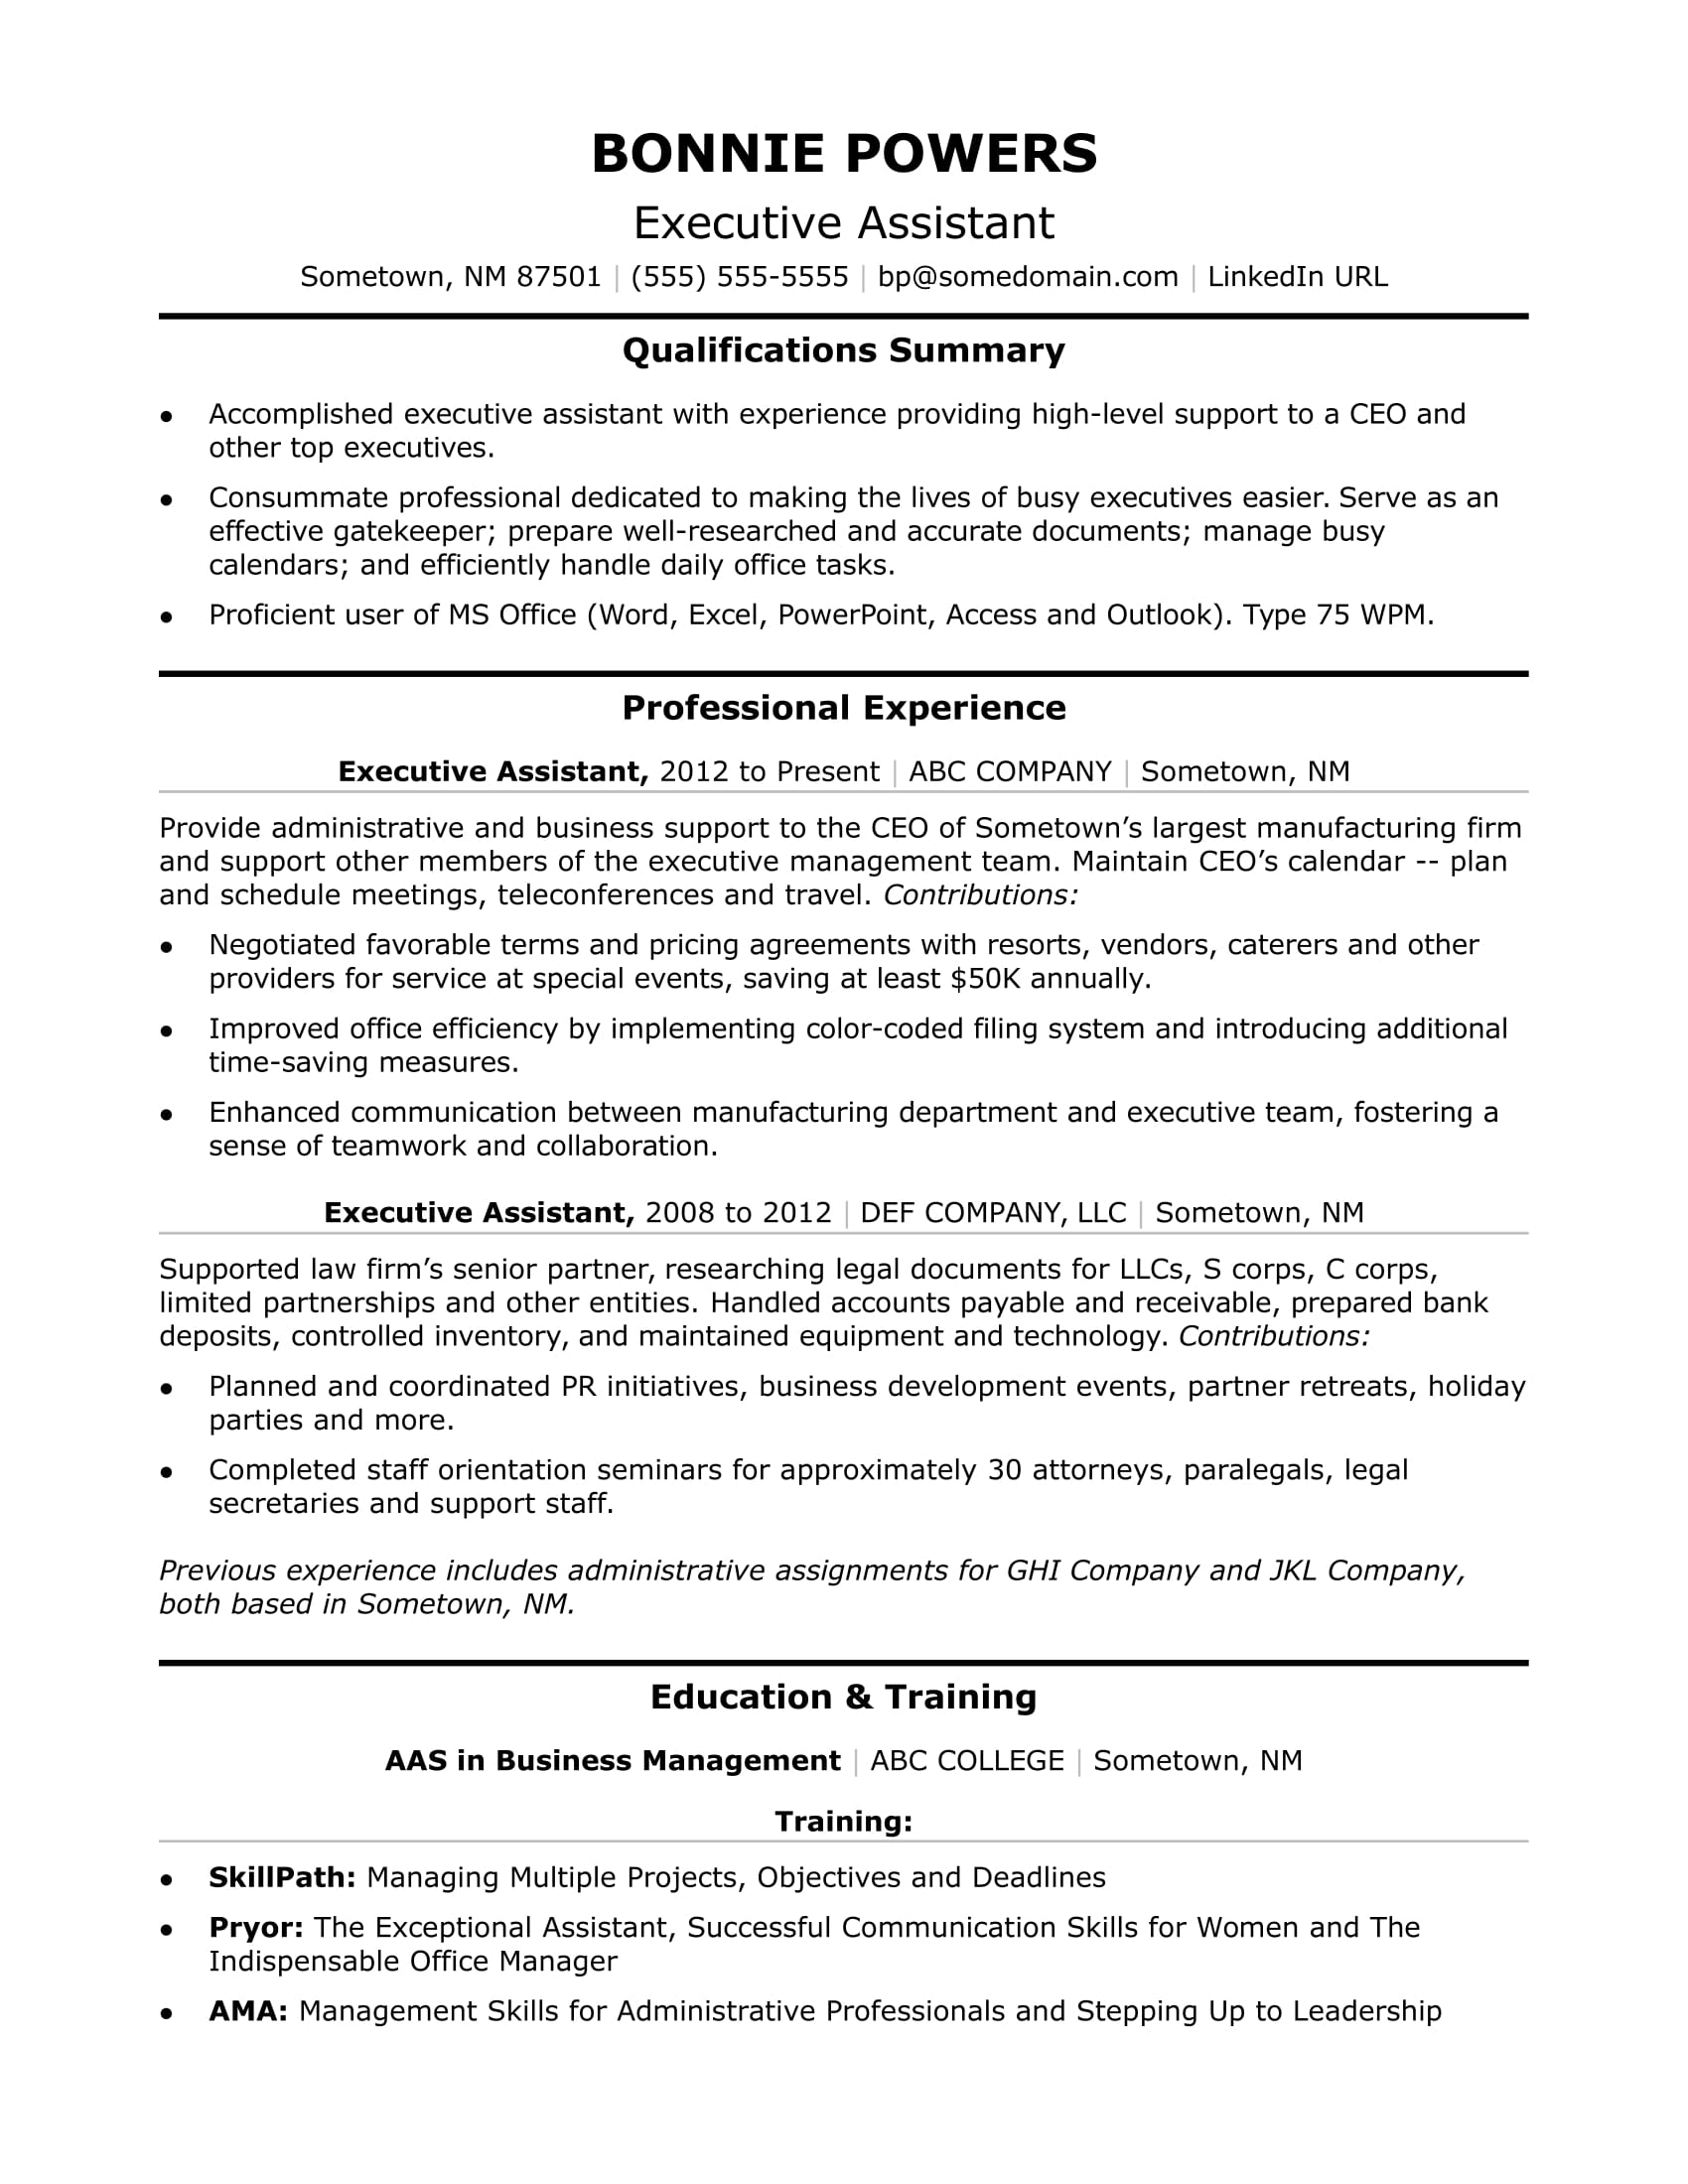 executive administrative assistant resume sample monster objective for secretary position Resume Objective For Secretary Position Resume